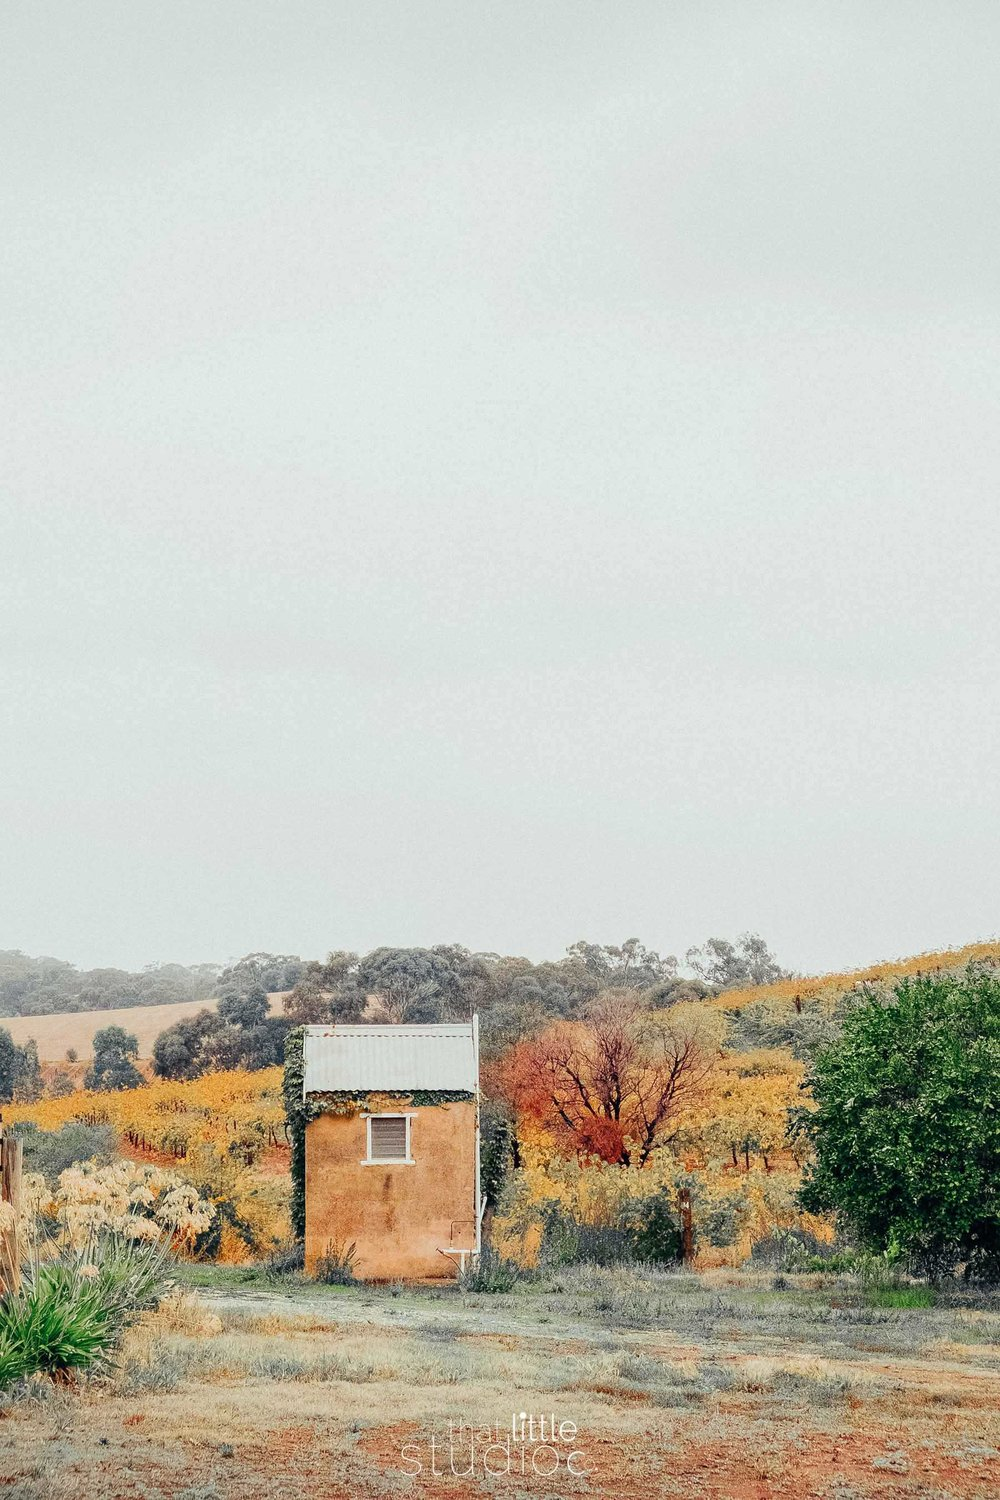 Barossa Adelaide, South Australia